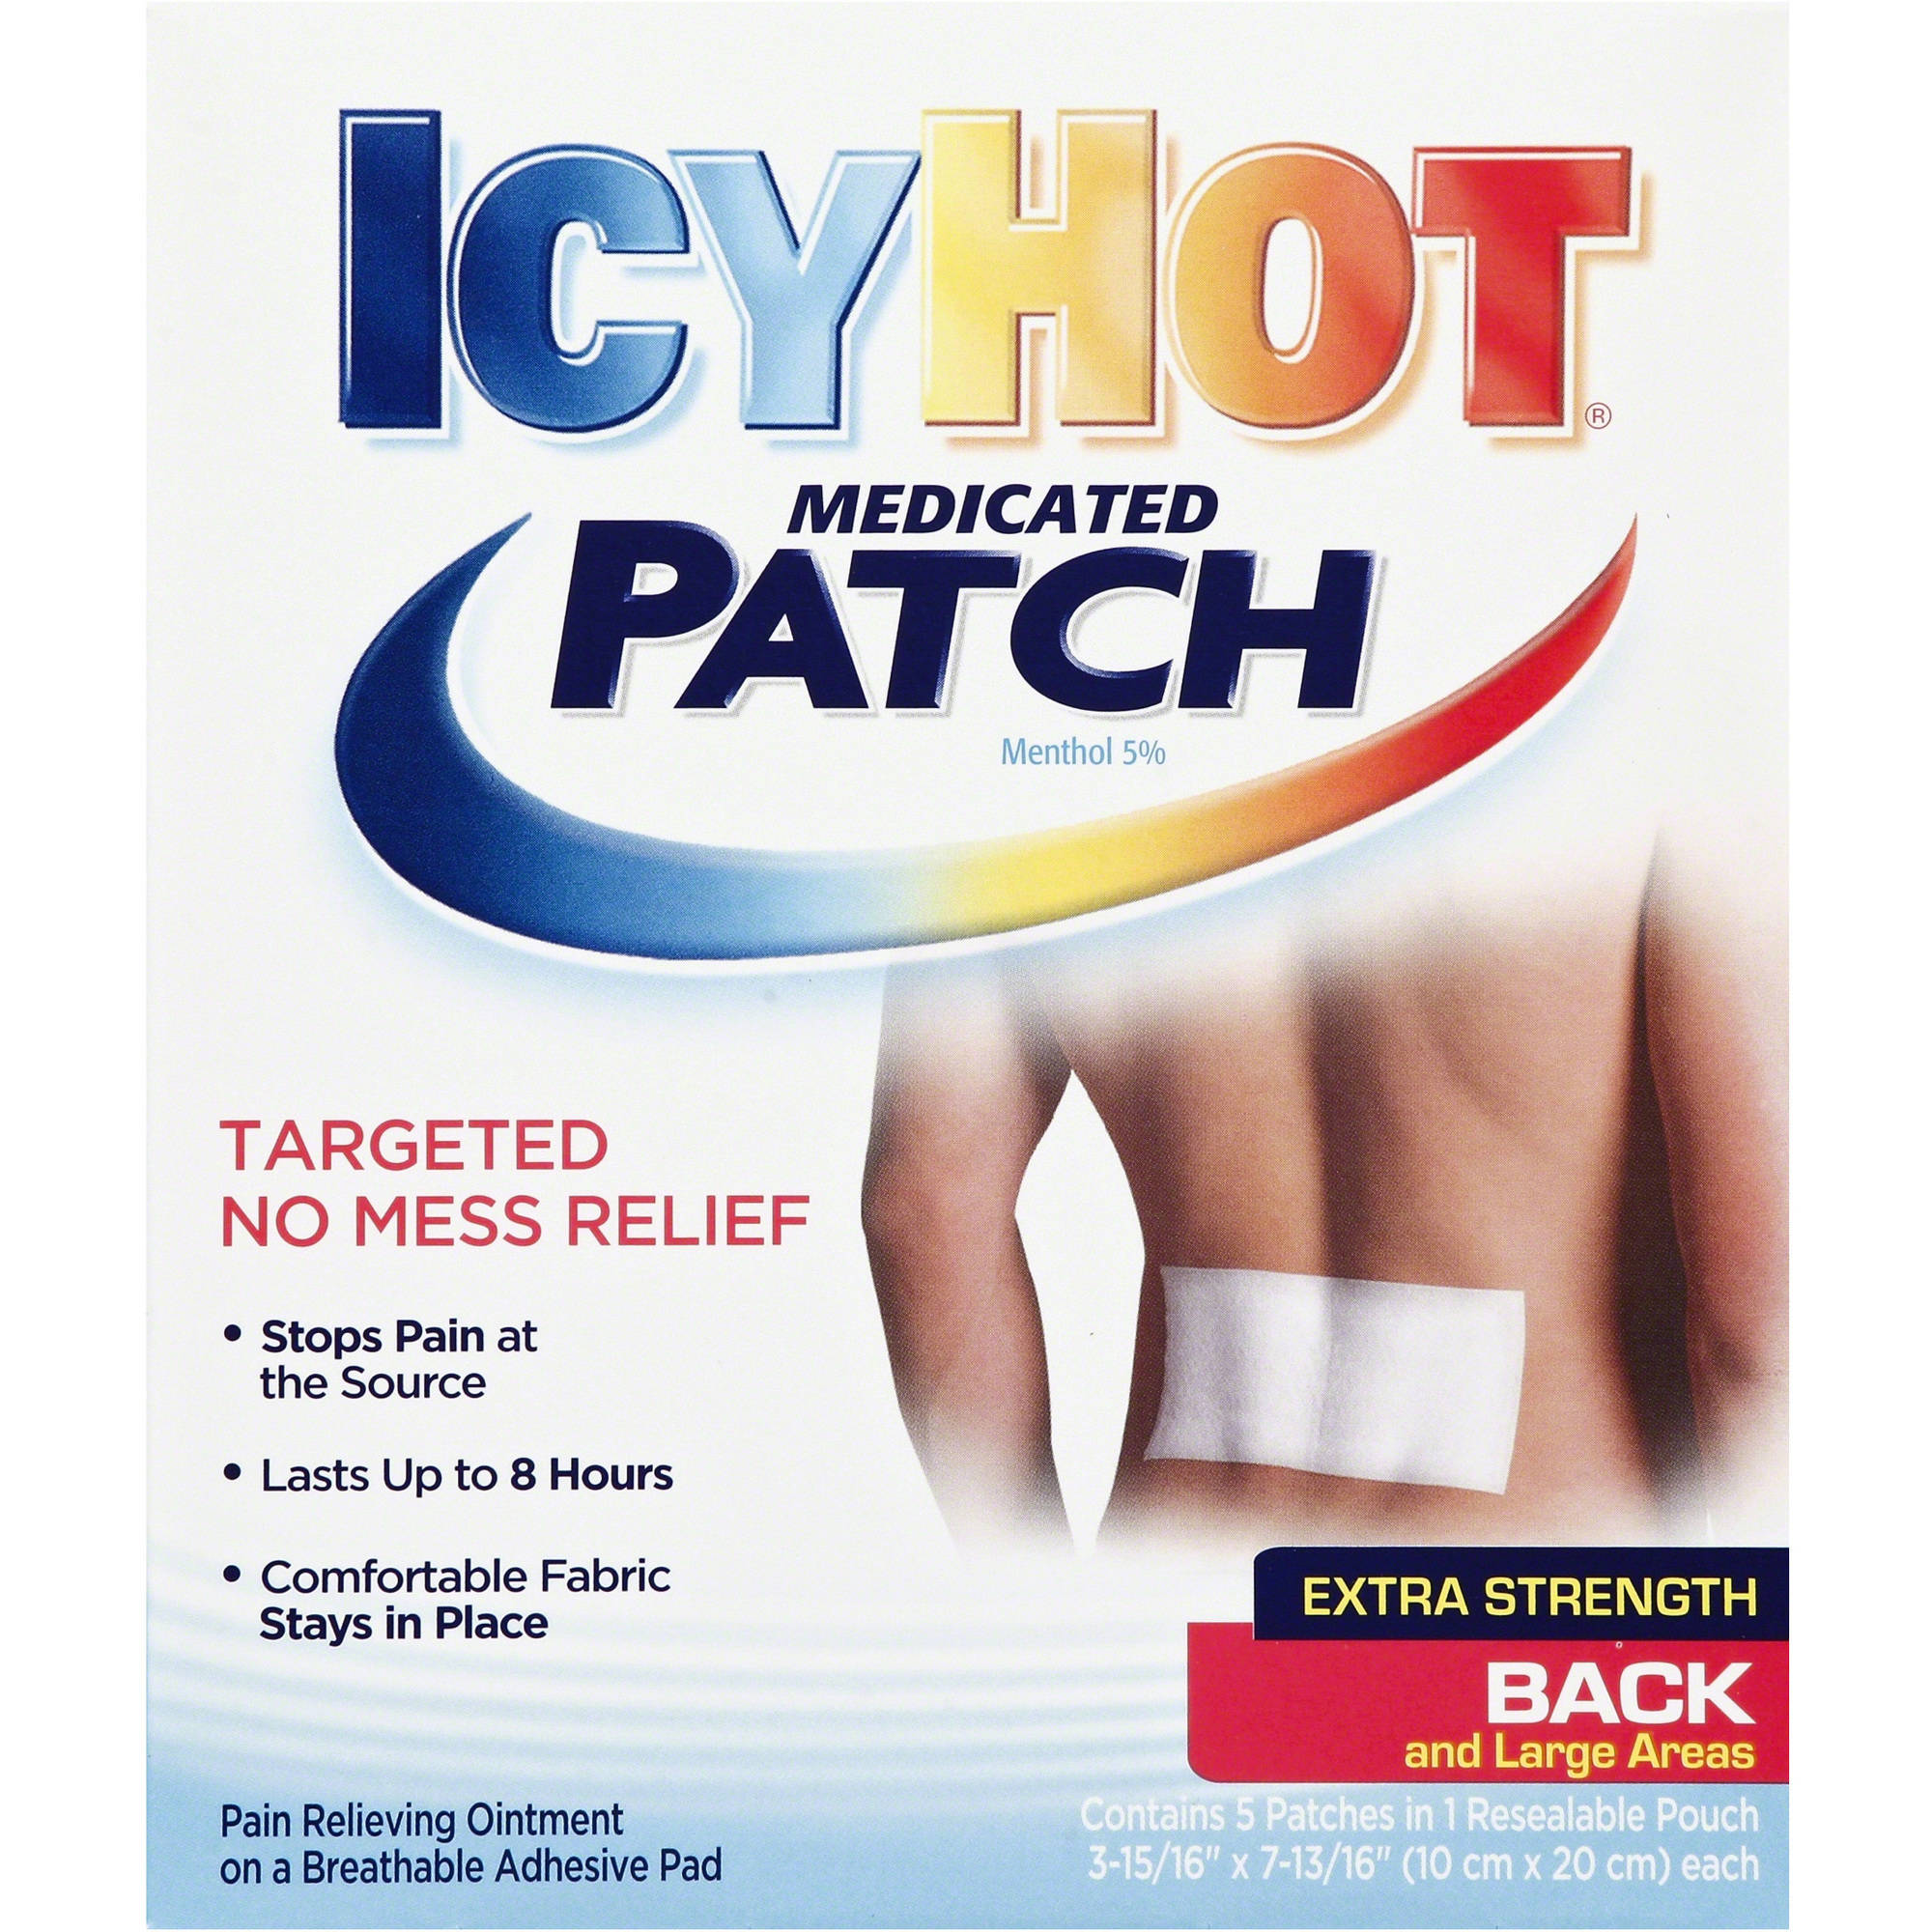 Icy Hot Extra Strength Back & Large Areas Medicated Patch, 5 count